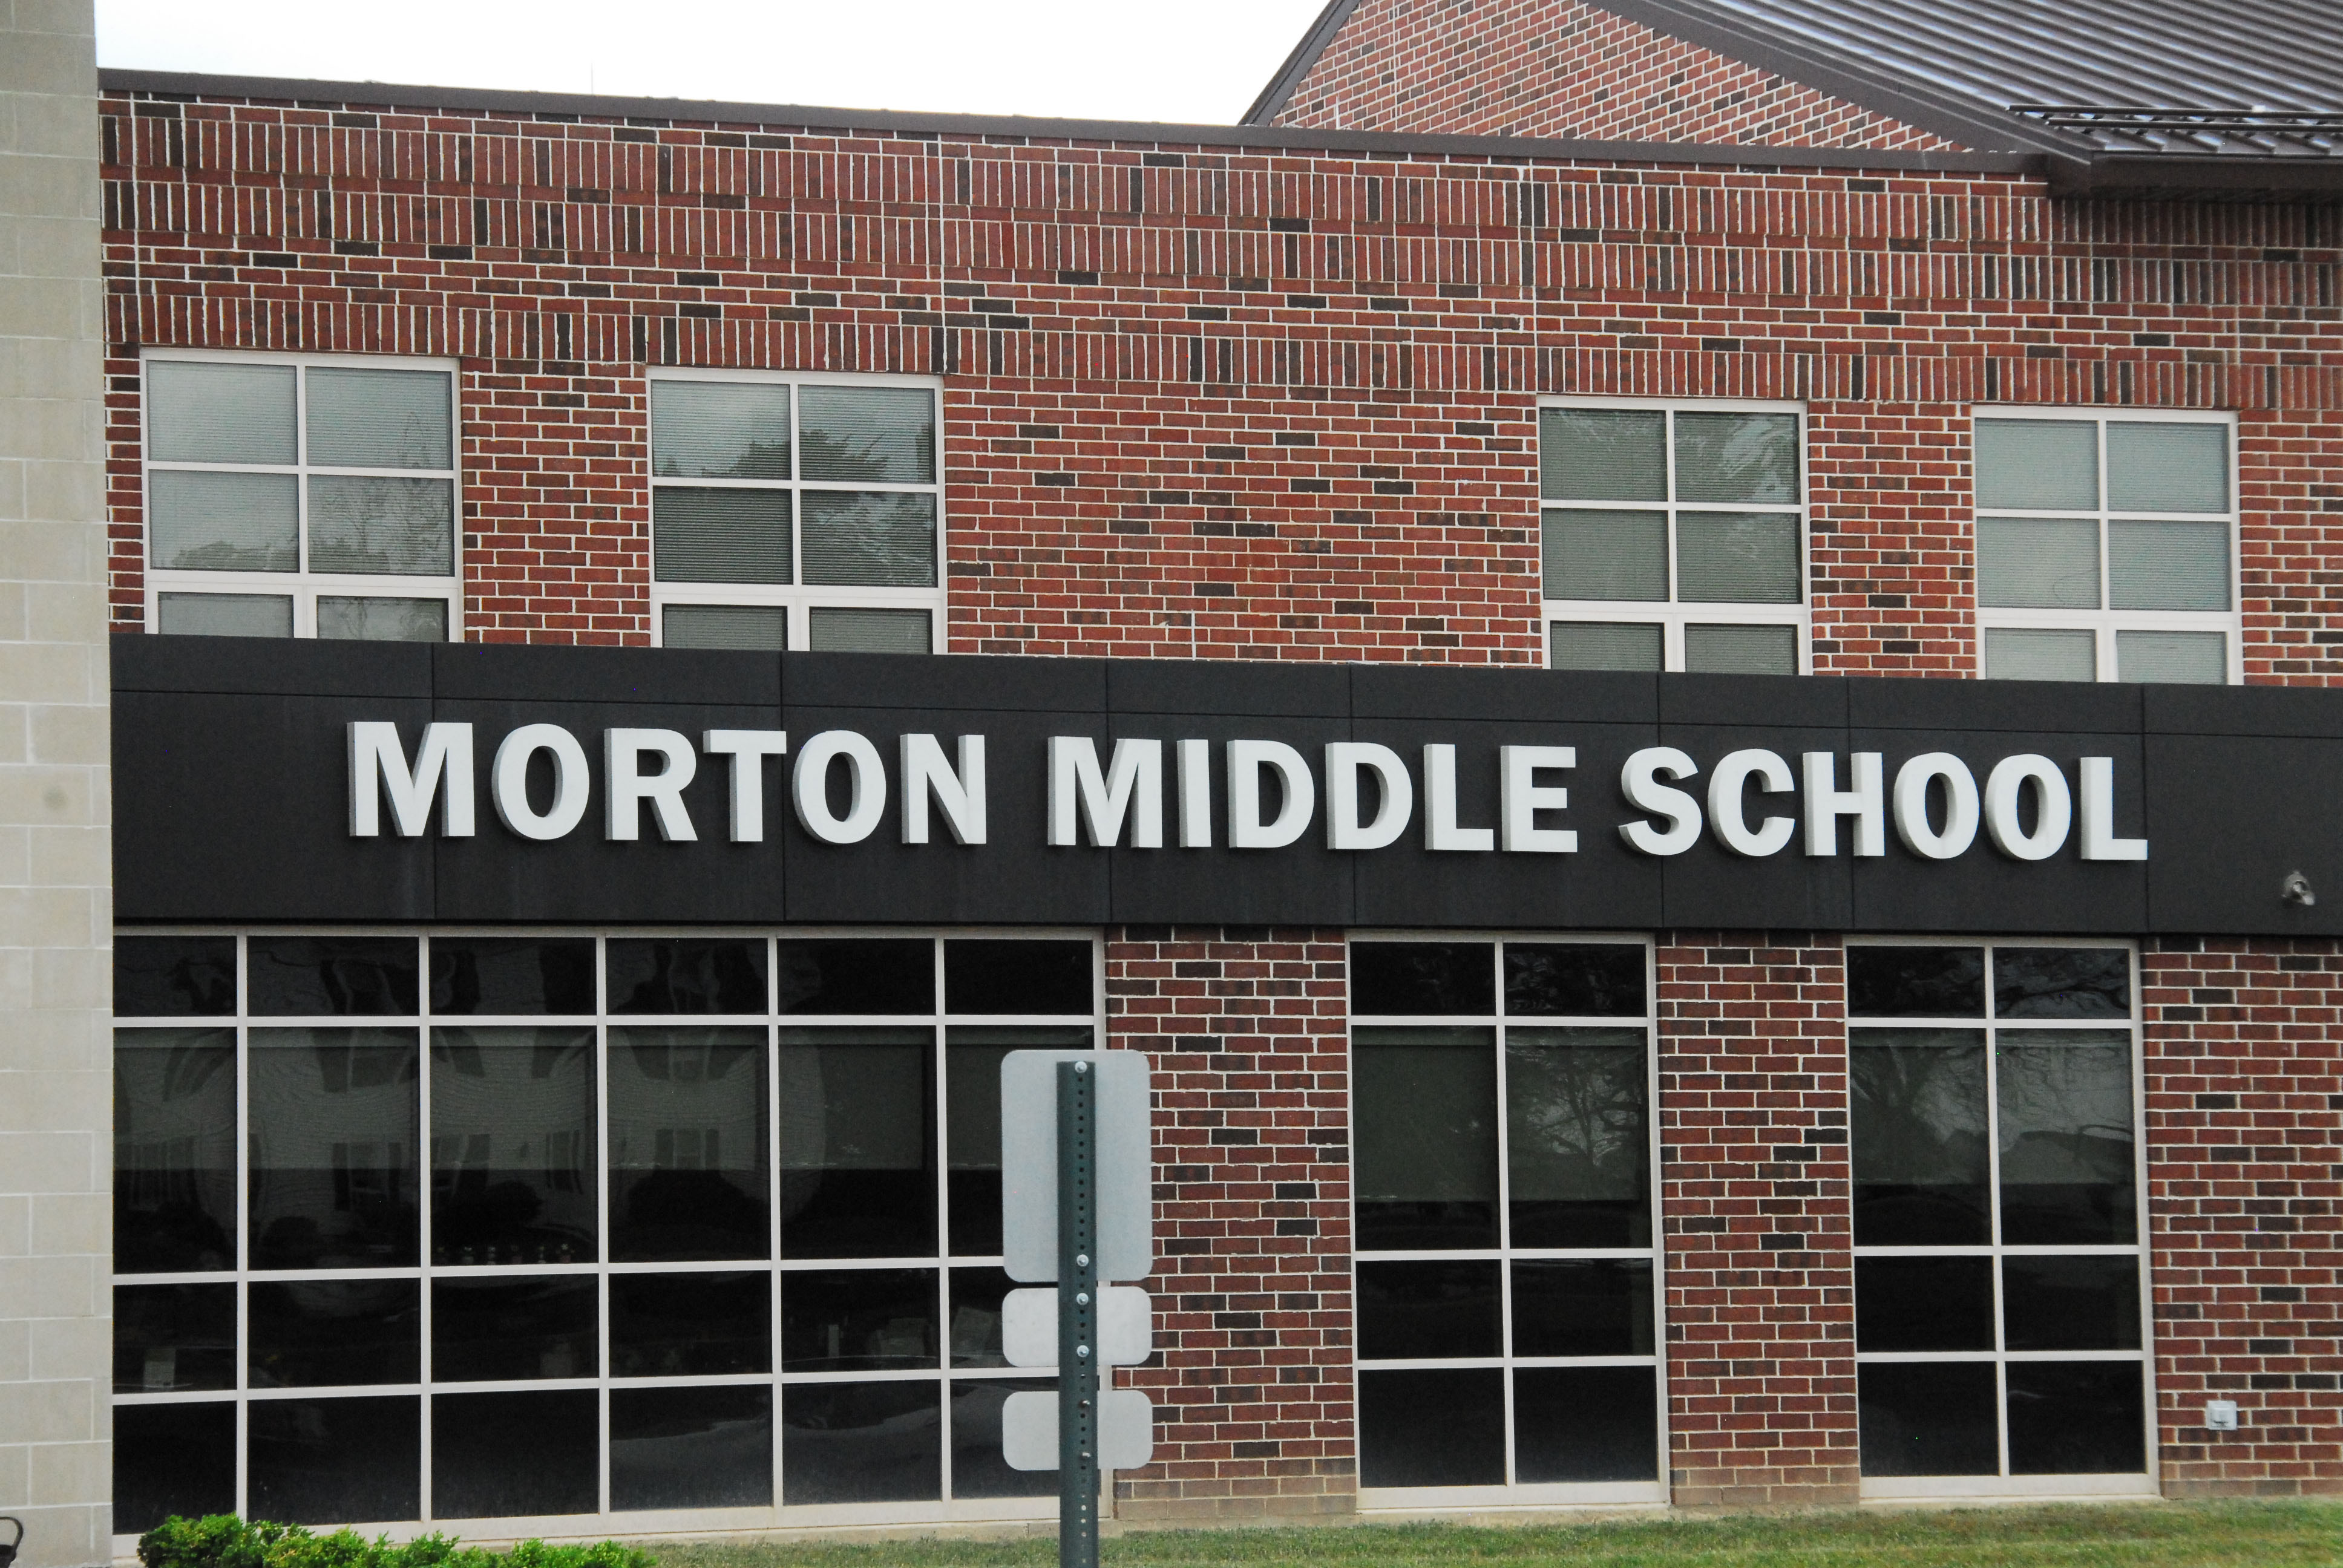 Chipotle to Host Morton Fundraiser